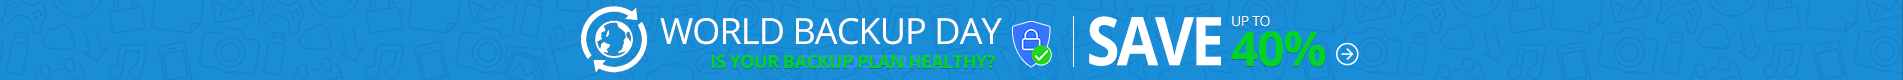 World-Backup-Day-2021-Banner